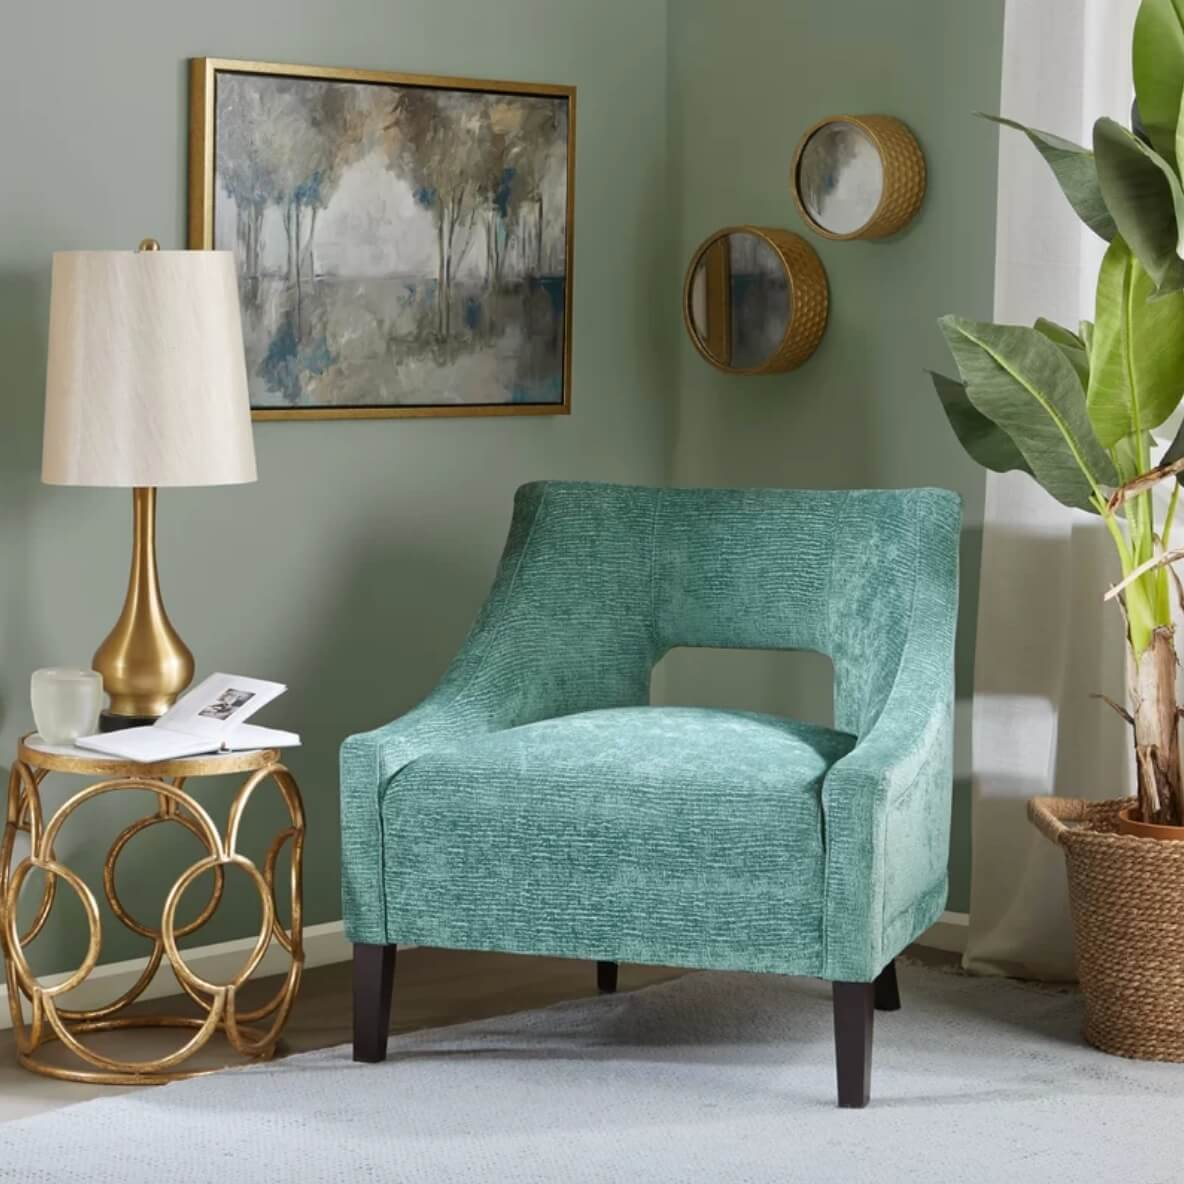 20 Colorful Accent Chair Ideas And Inspiration Freshome